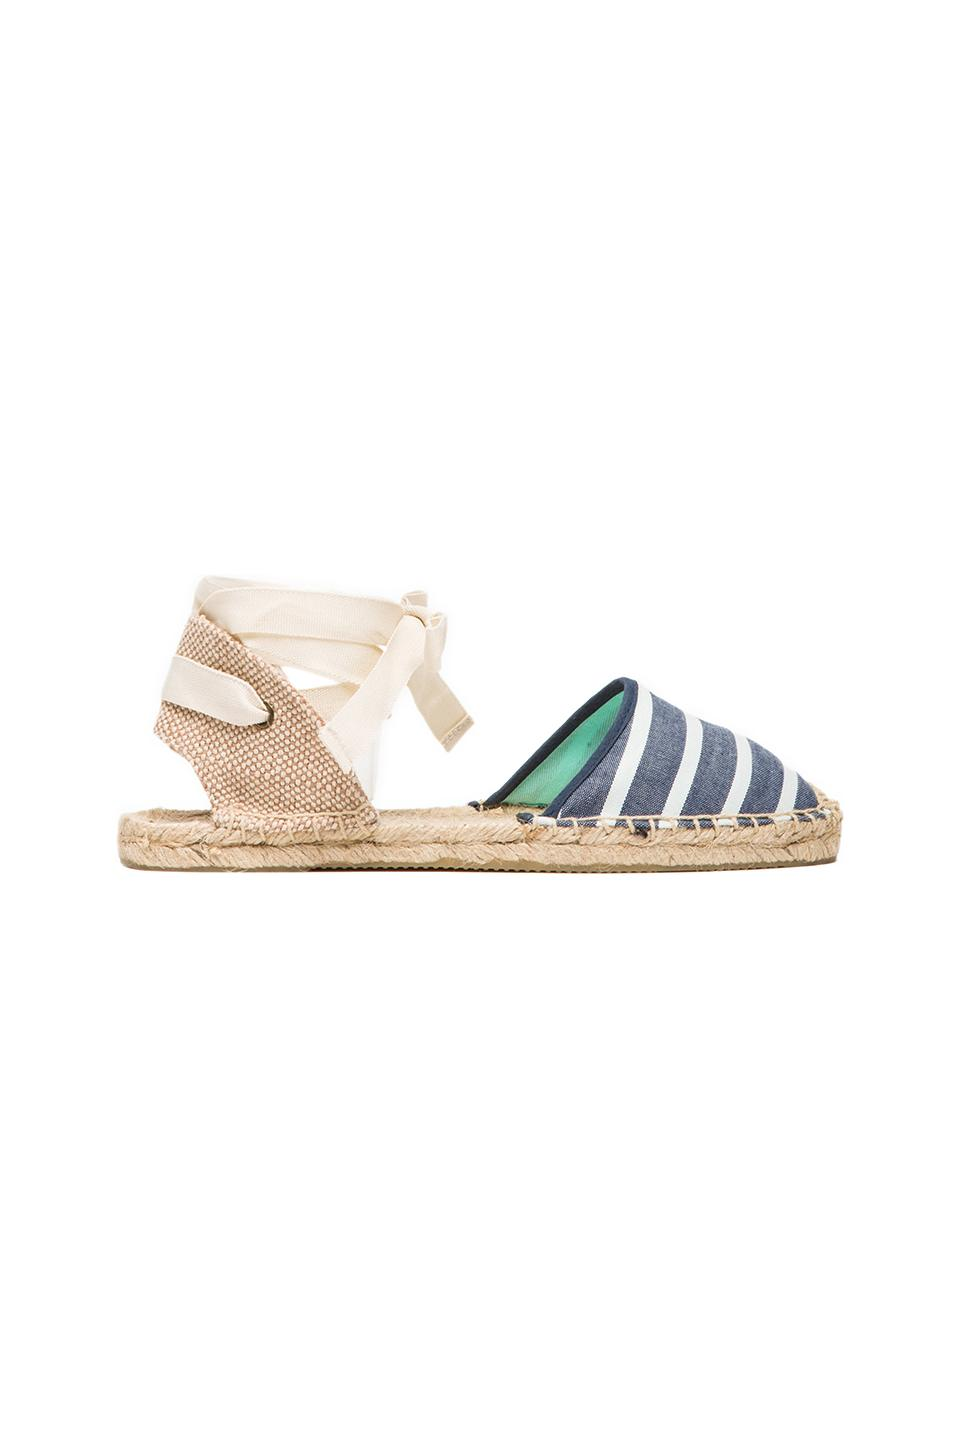 Soludos Classic Sandal Stripes in Light Navy Stripe